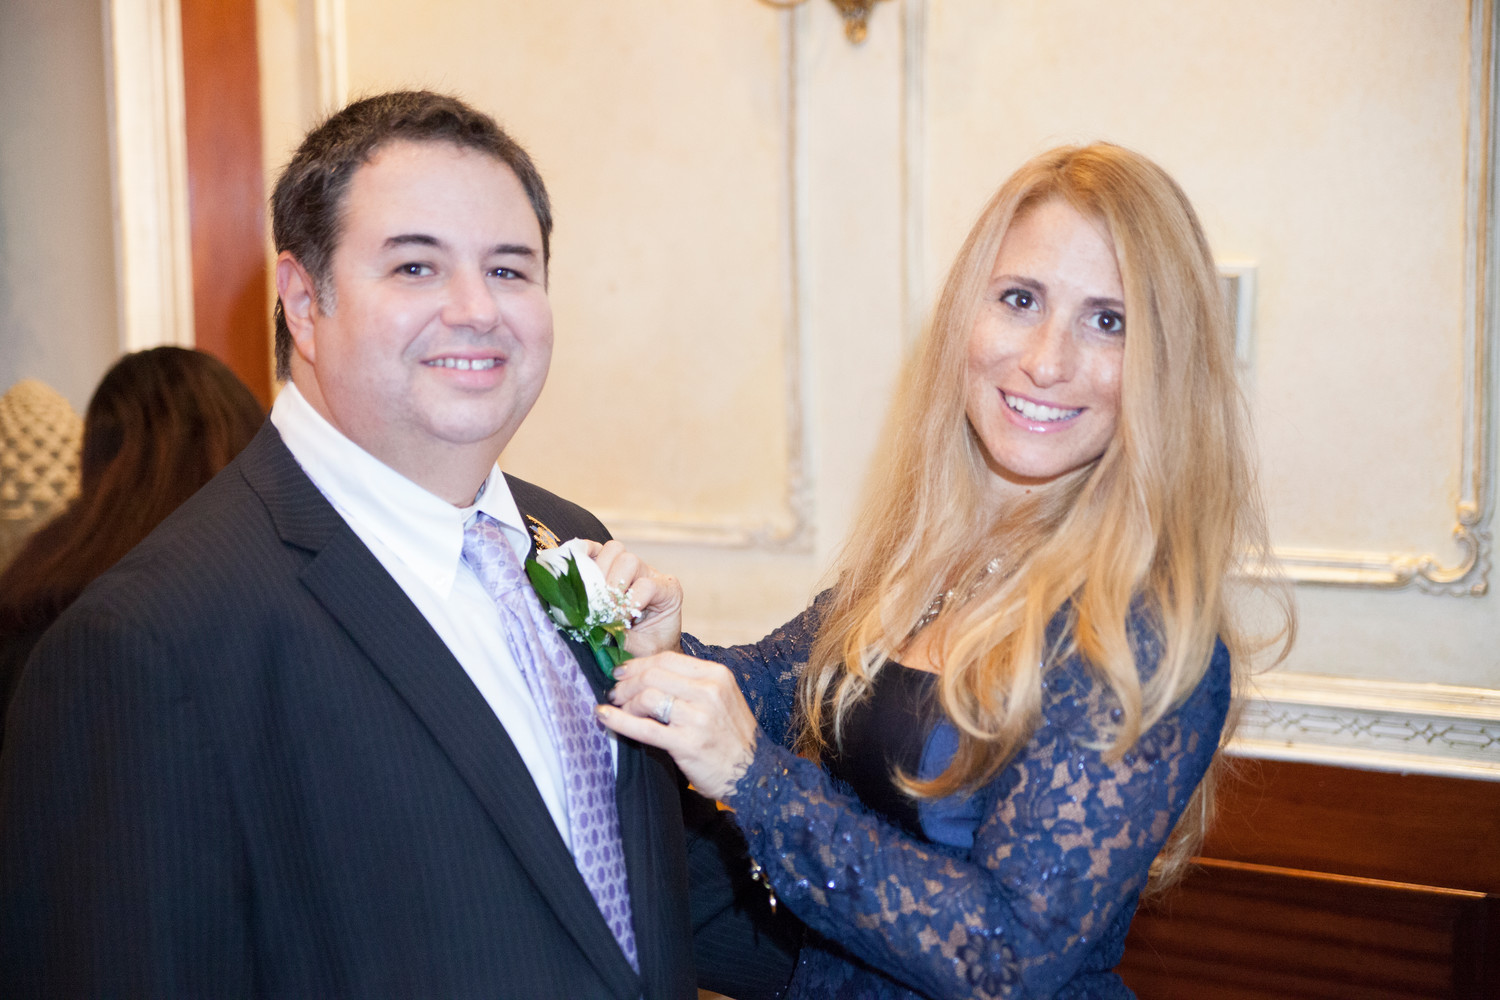 Ross Schiller celebrated with his wife, Melody, after being sworn in as the East Meadow Kiwanis Club president last year.